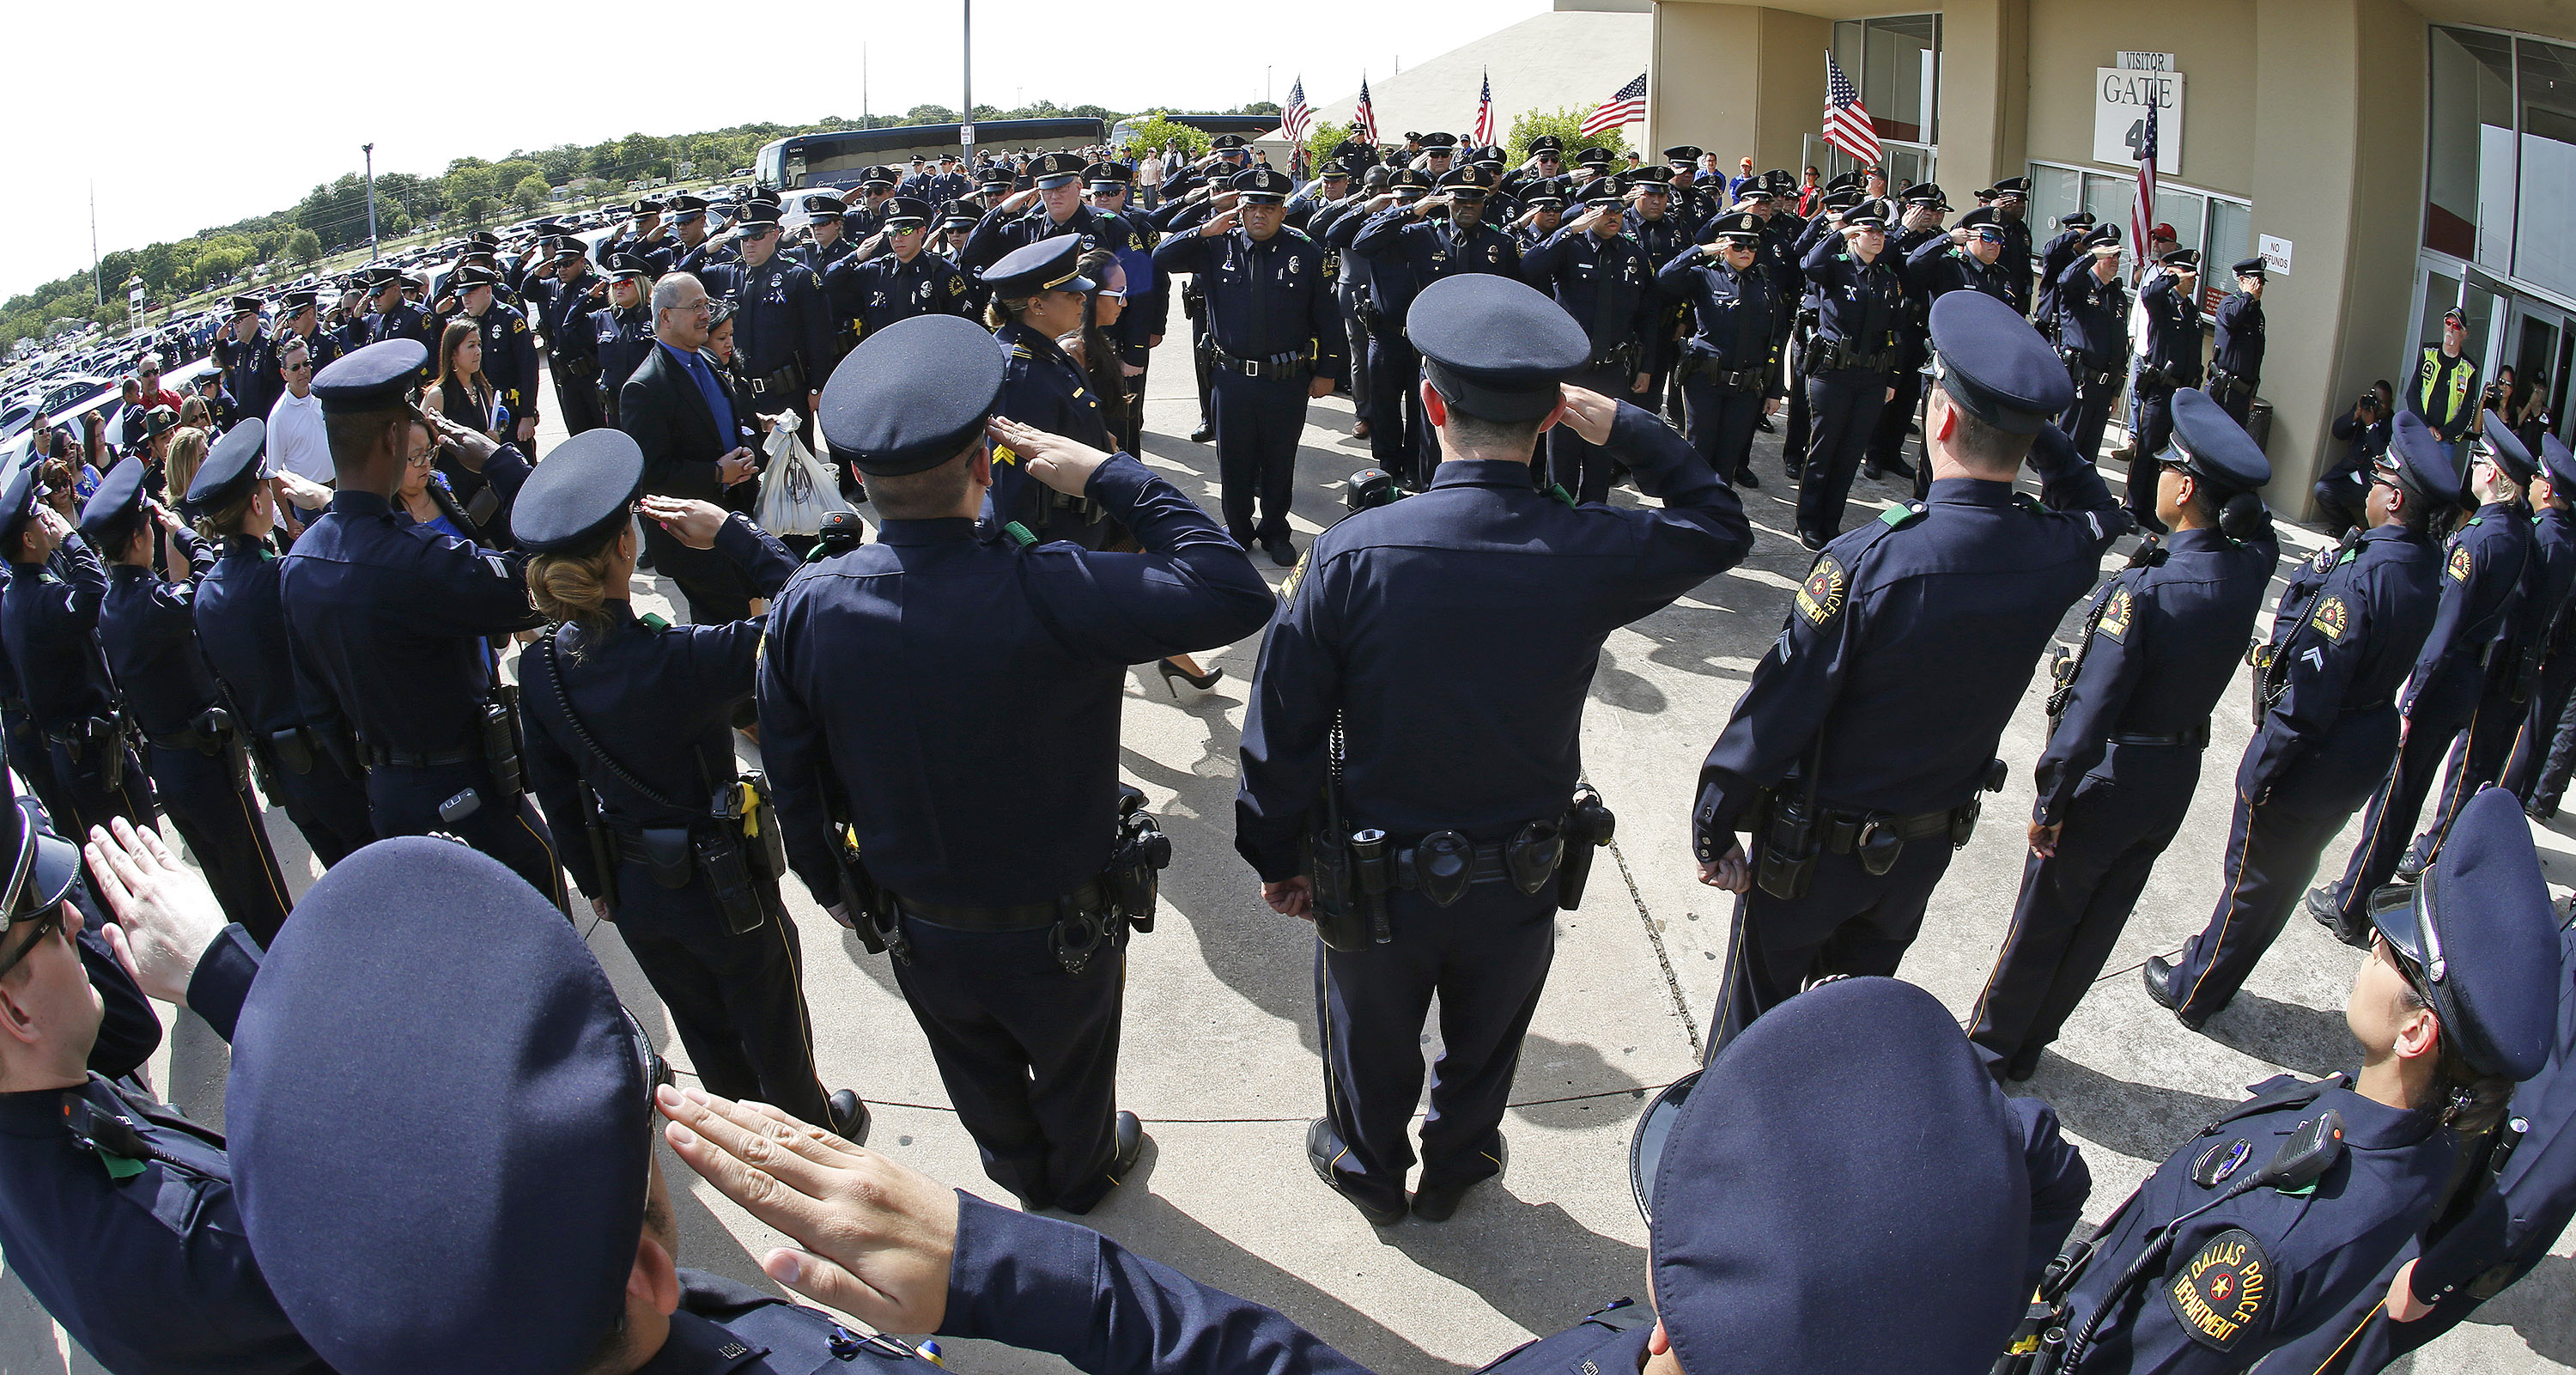 Dallas Police officers salute as family of officer Patrick Zamarippa arrives for his funeral on July 16, 2016. Zamarippa was one of the officers killed during the shooting in Dallas on July 7, 2016. Since, Texas Governor Greg Abbott has proposed that attacking police officers should be classified as a hate crime.